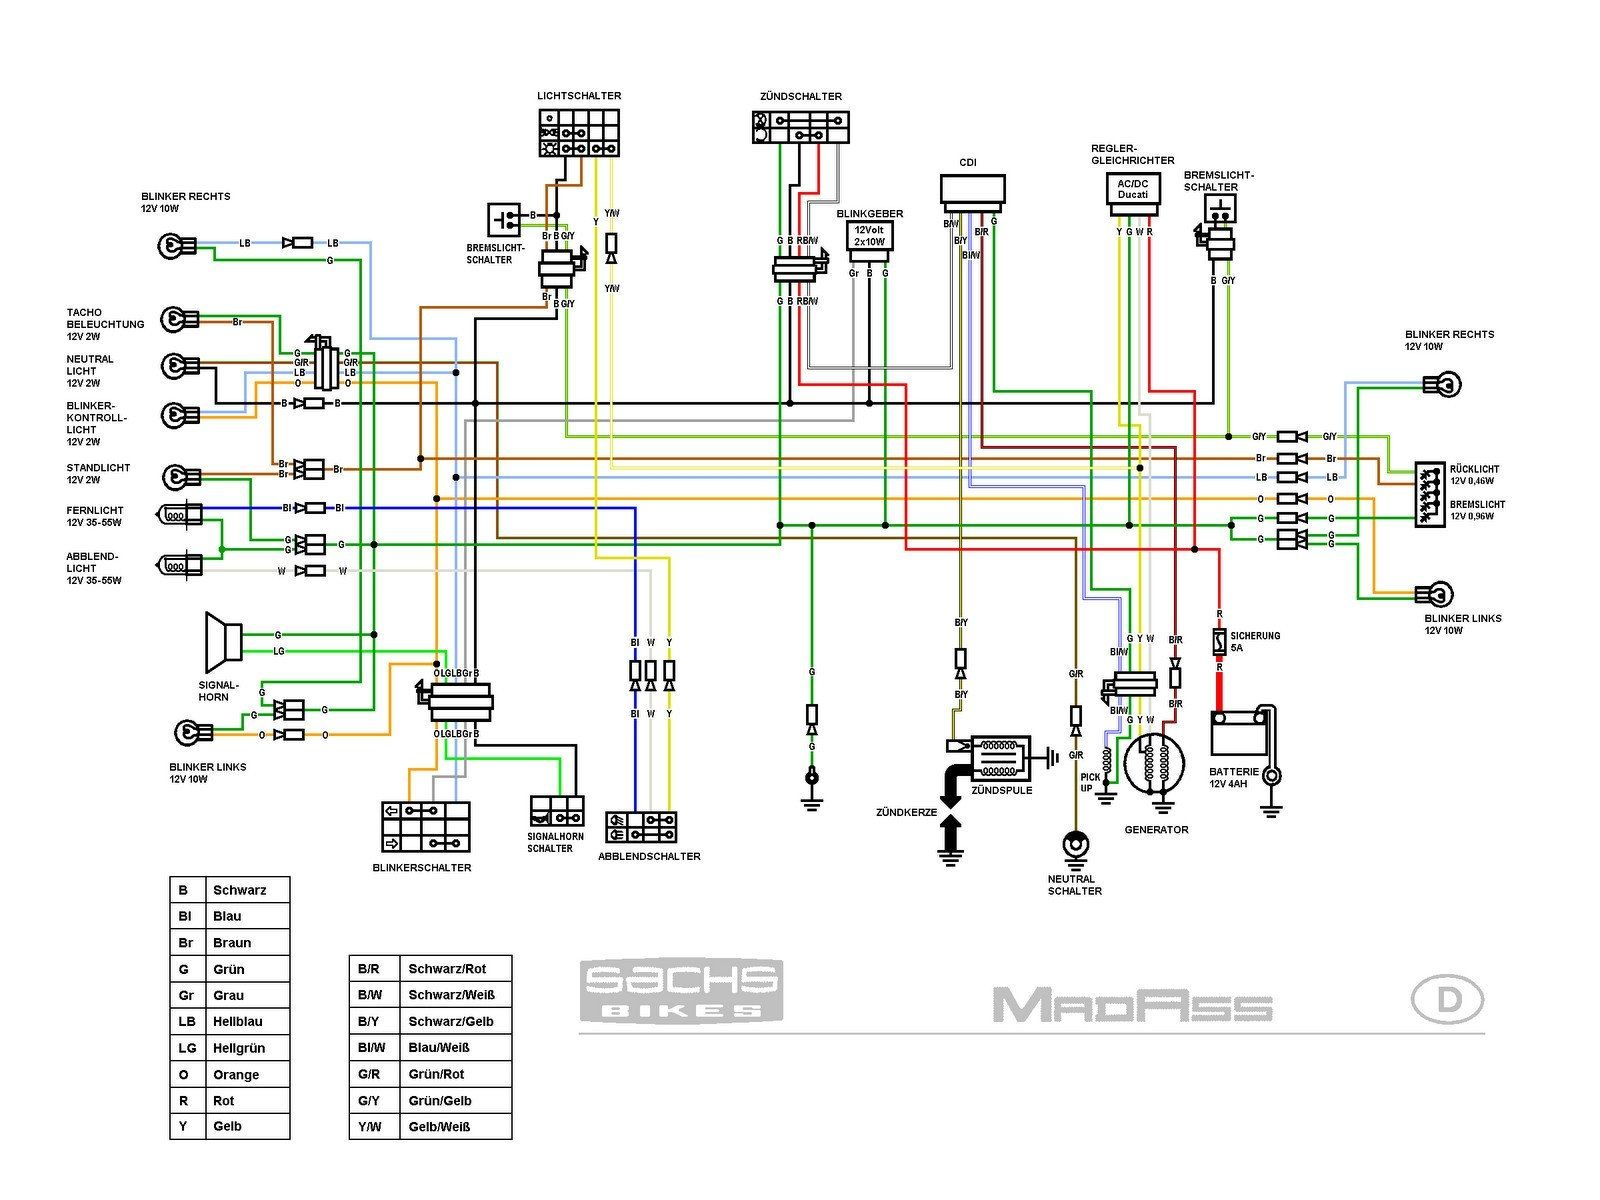 DO_6935] Wiring Diagram For Lifan 125Kweca Norab Gue45 Mohammedshrine Librar Wiring 101